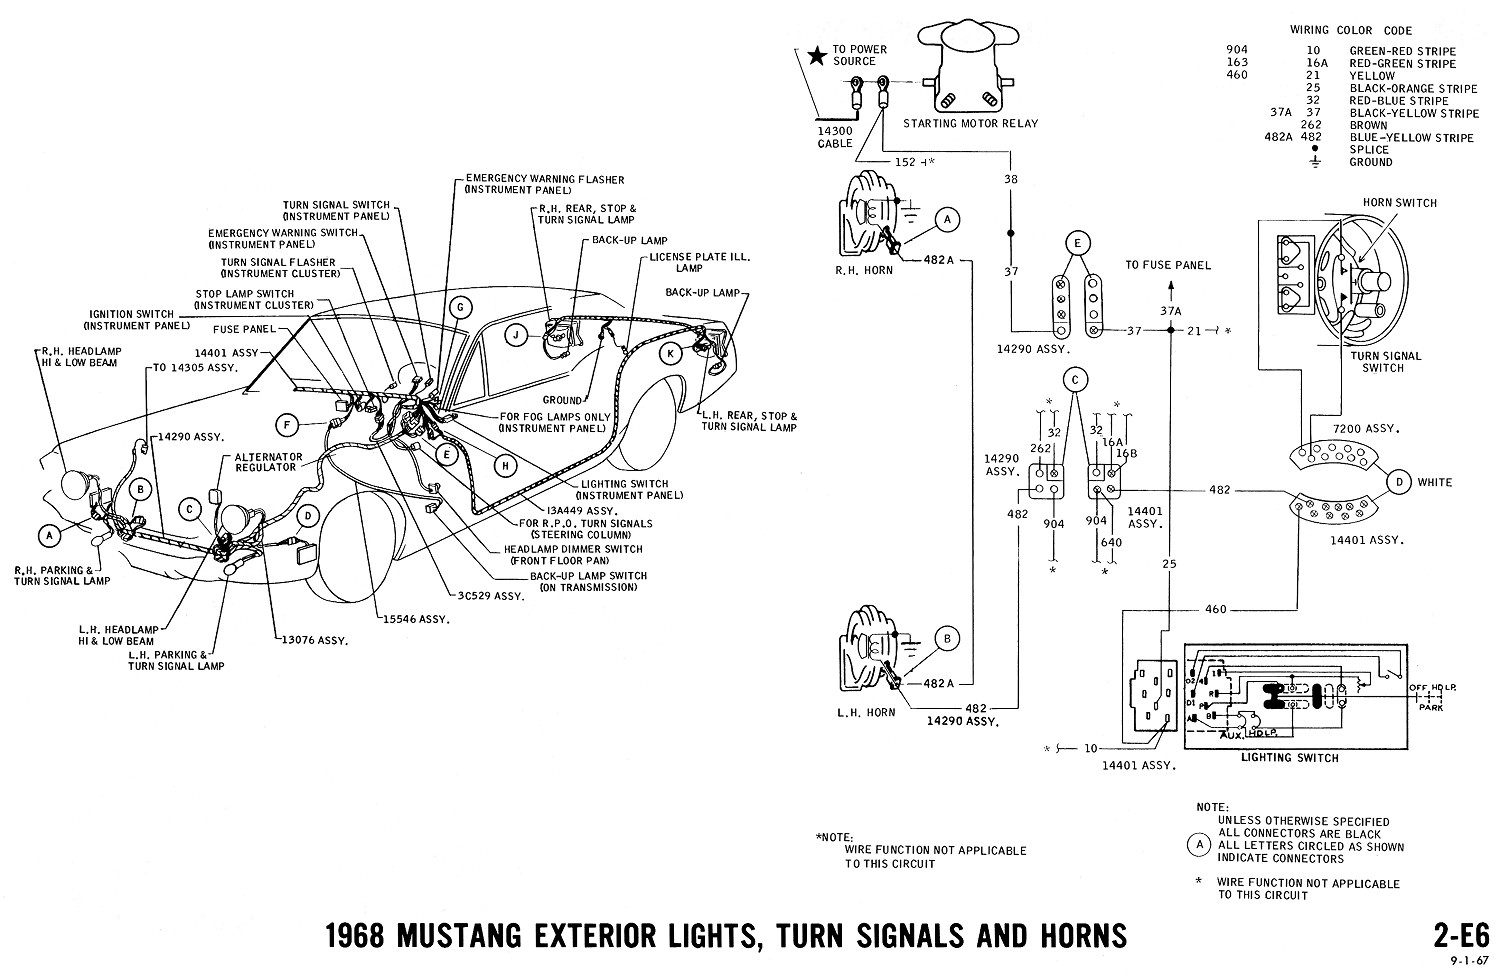 1968 ford mustang fuse box diagram 1968 mustang wiring diagrams | evolving software 1988 ford mustang fuse box diagram